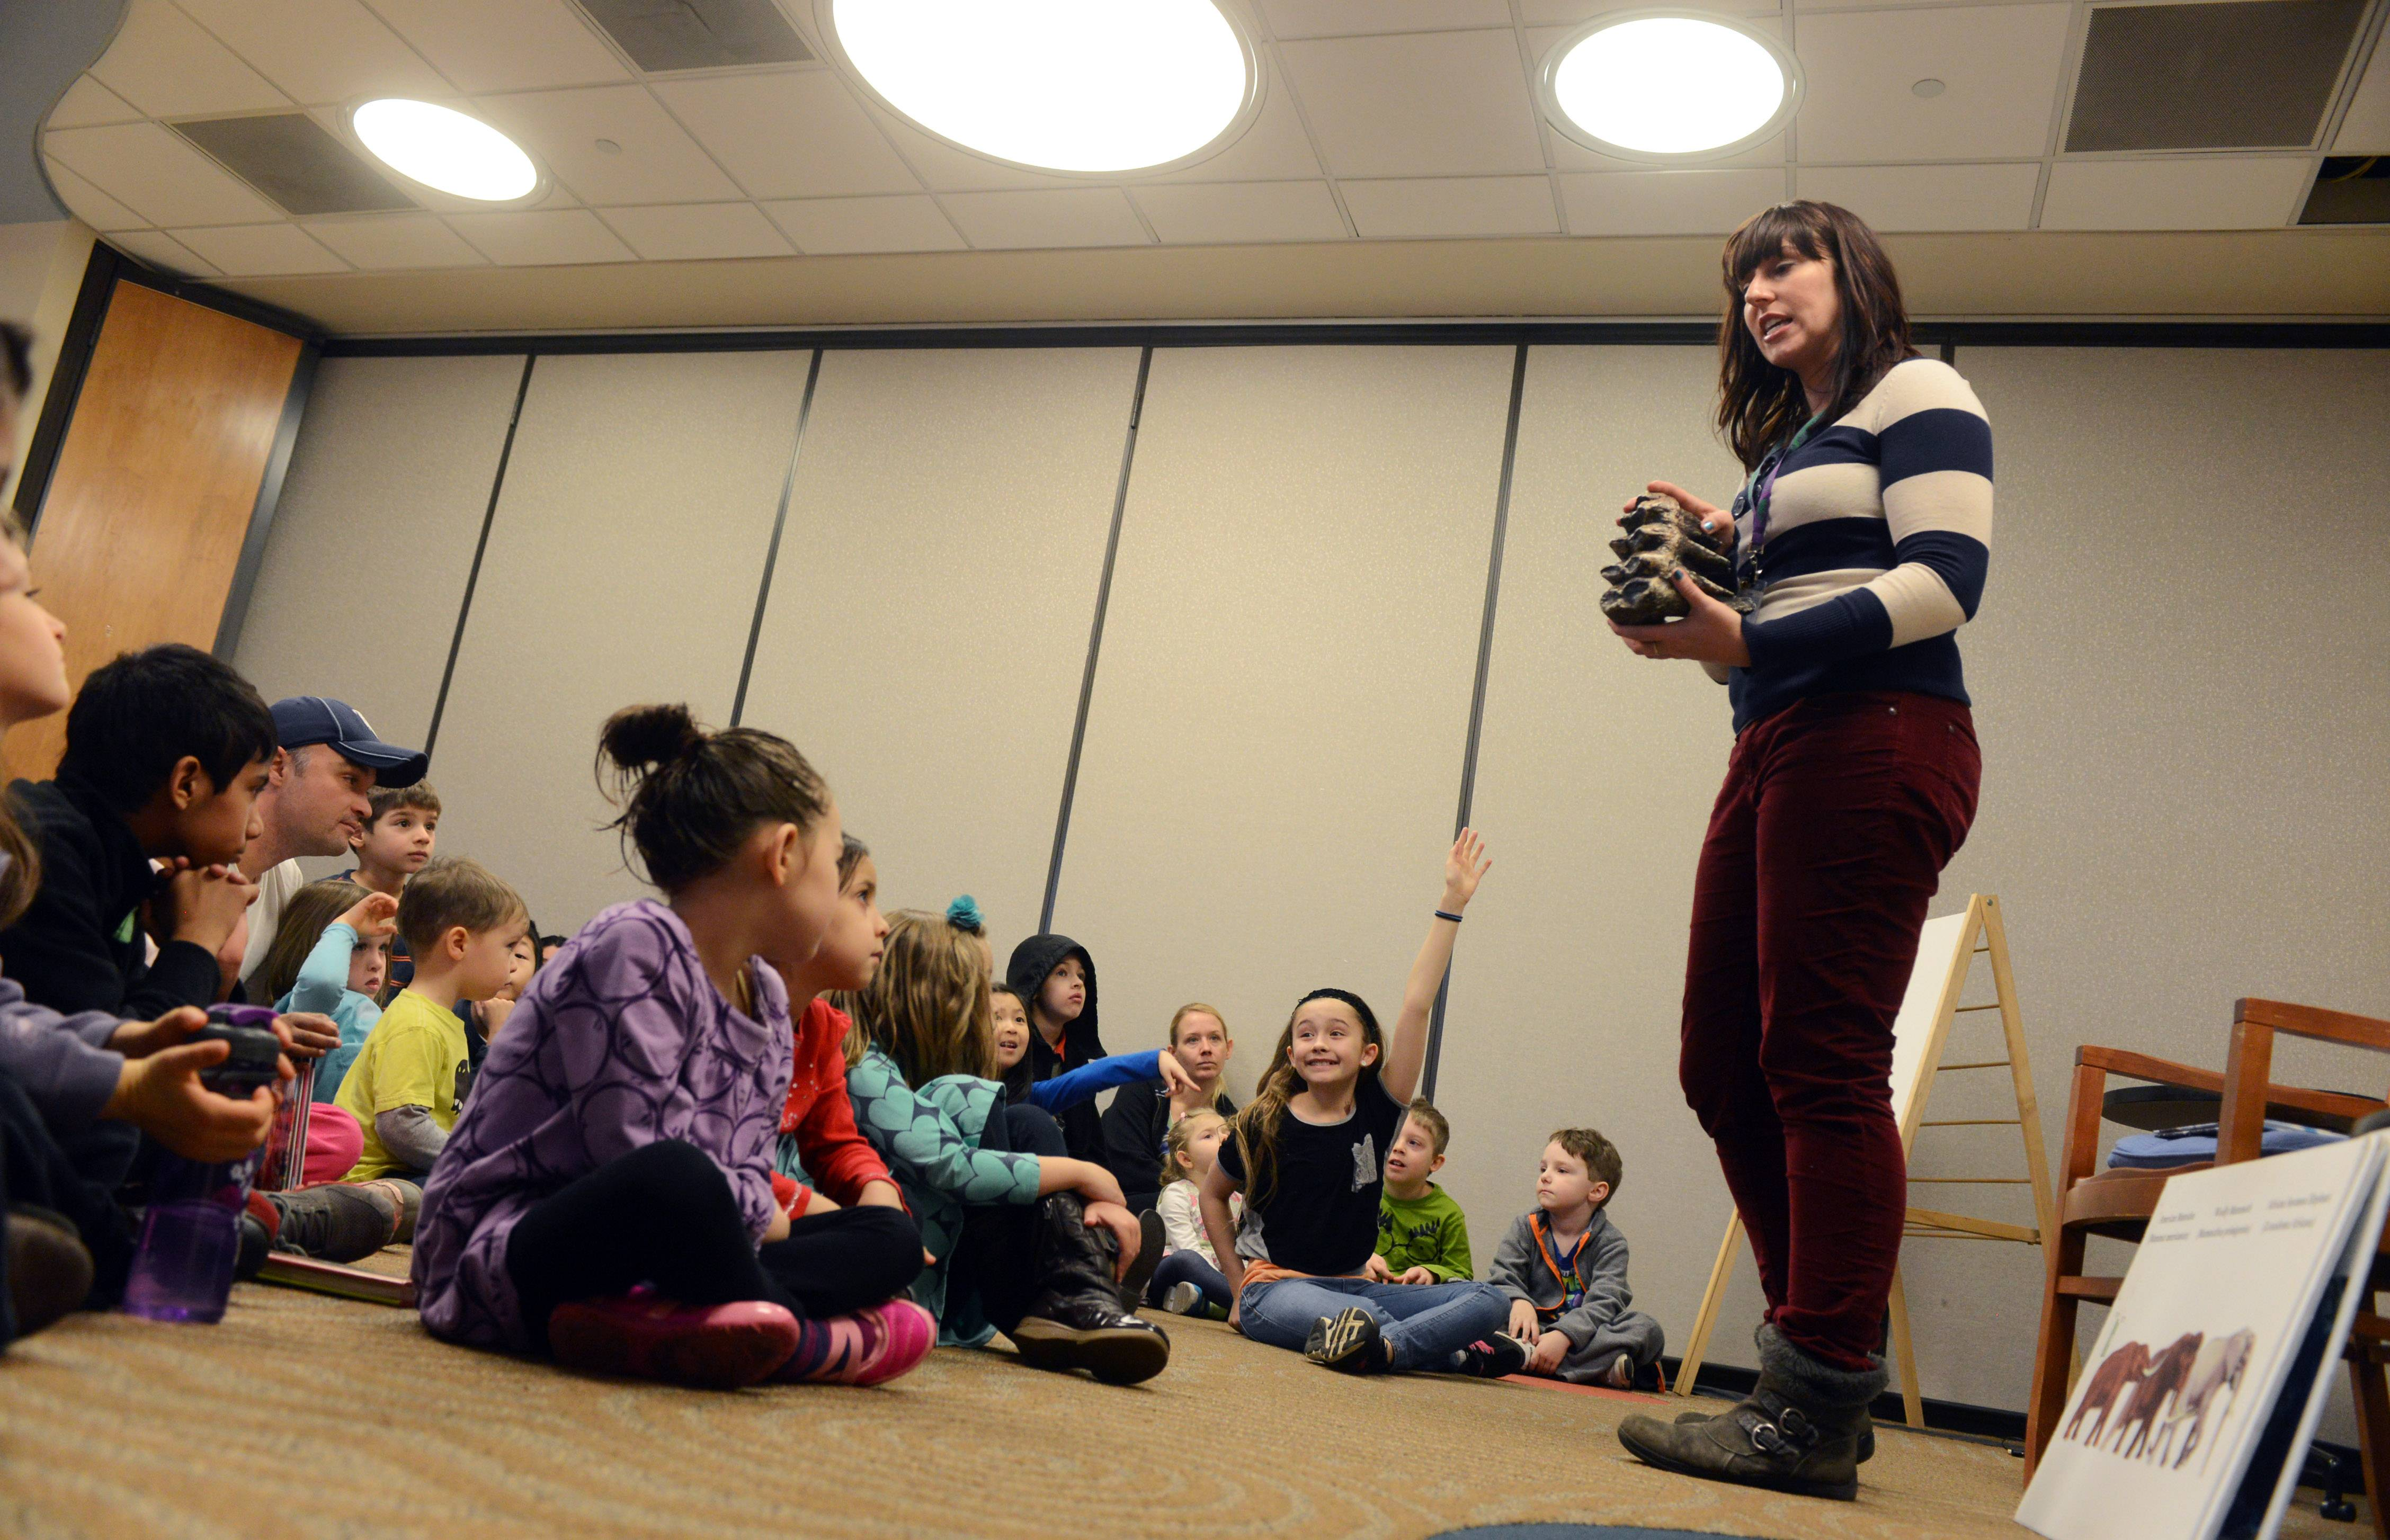 Lake County Discovery Museum educator Nicole Stocker shows a fossil cast of a mastodon tooth to kids participating in the Mighty Mastodons program Tuesday at Ela Area Public Library in Lake Zurich.